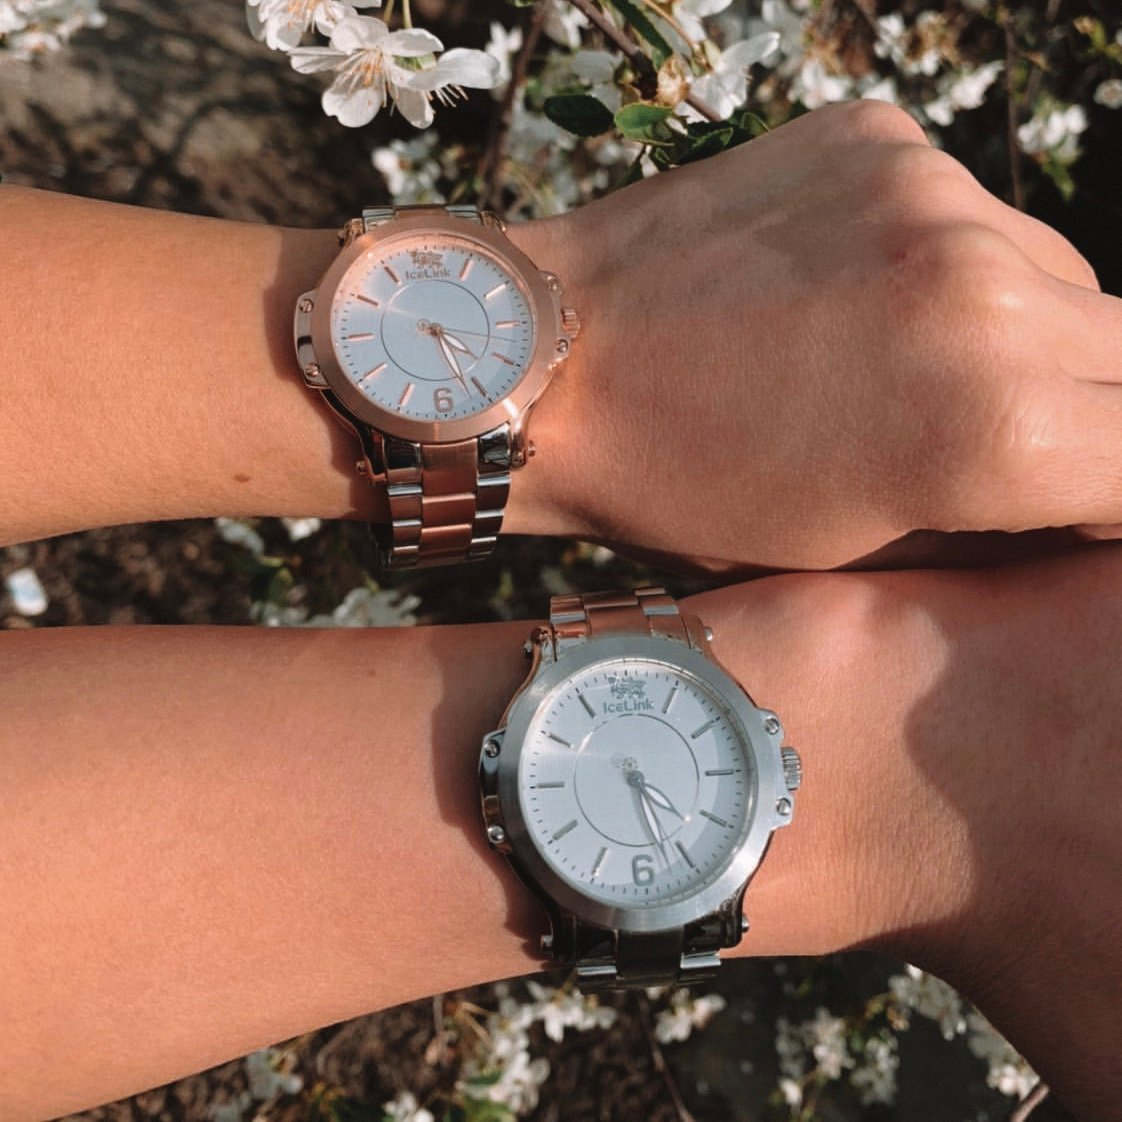 Two arms showing different finishes of the Steel & White Watch